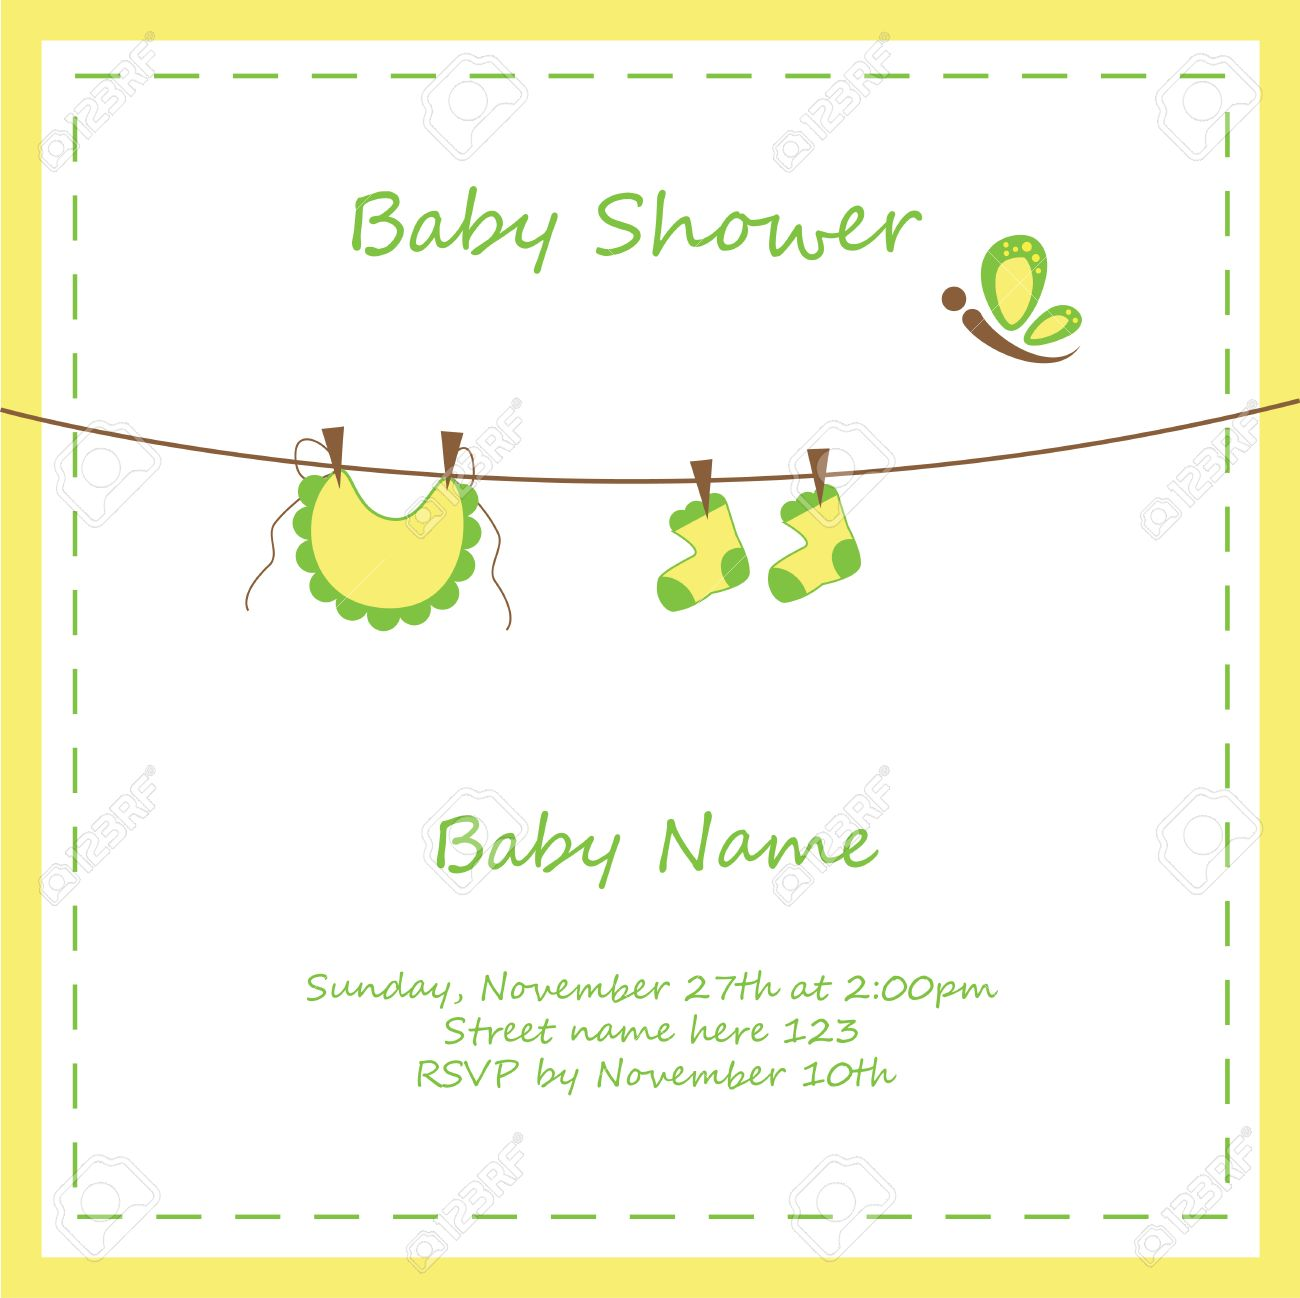 Neutral Baby Shower Invitation Royalty Free Cliparts Vectors And Stock Illustration Image 23009902